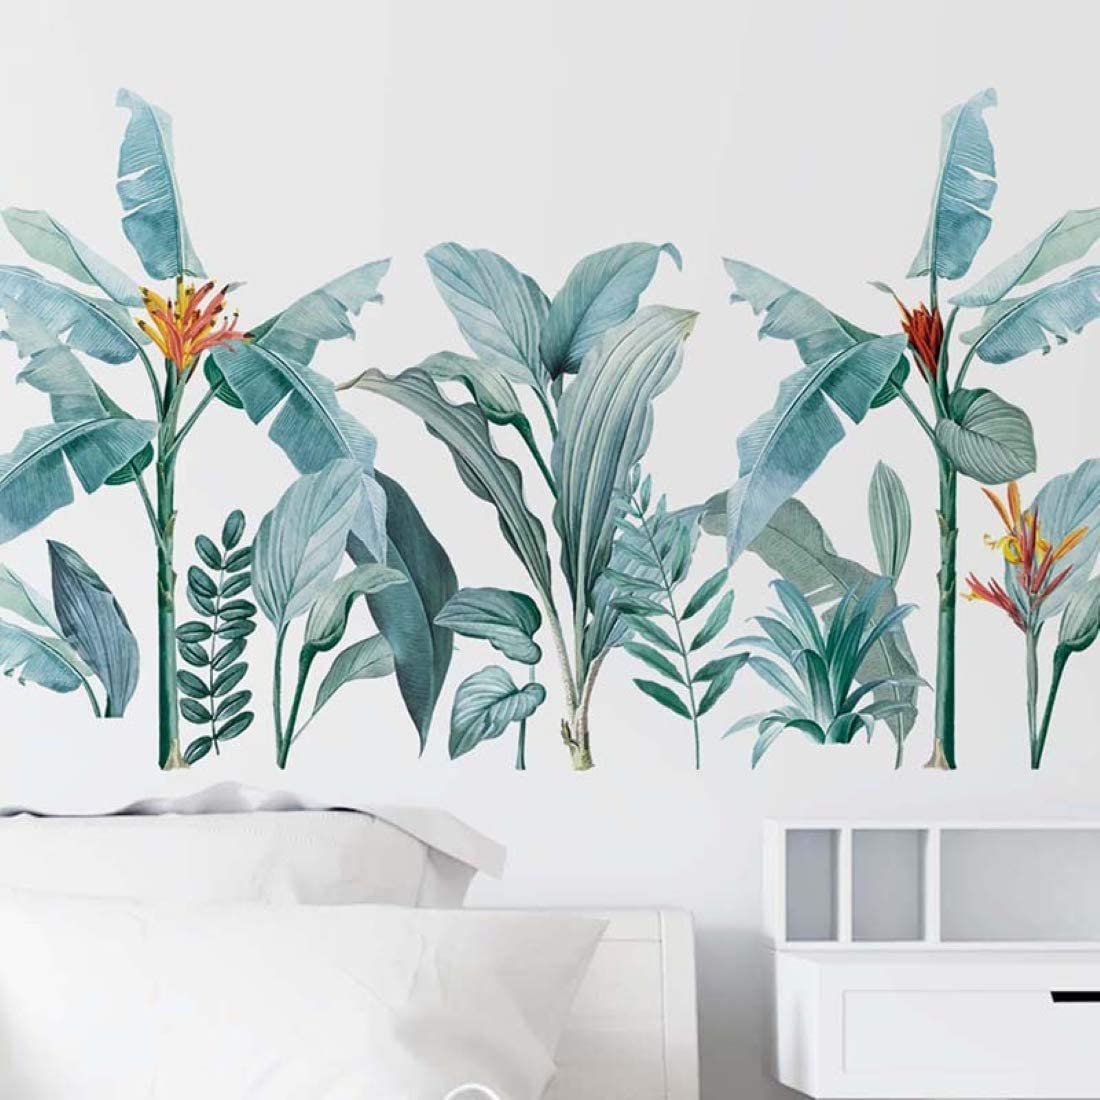 Green Plants Wall Decal Tropical Natural Plant Wall Decor Creative Removable Wall Stickers for Wall Corner Window Nursery Room Living Room Office Bedroom Decor(Plant_2)